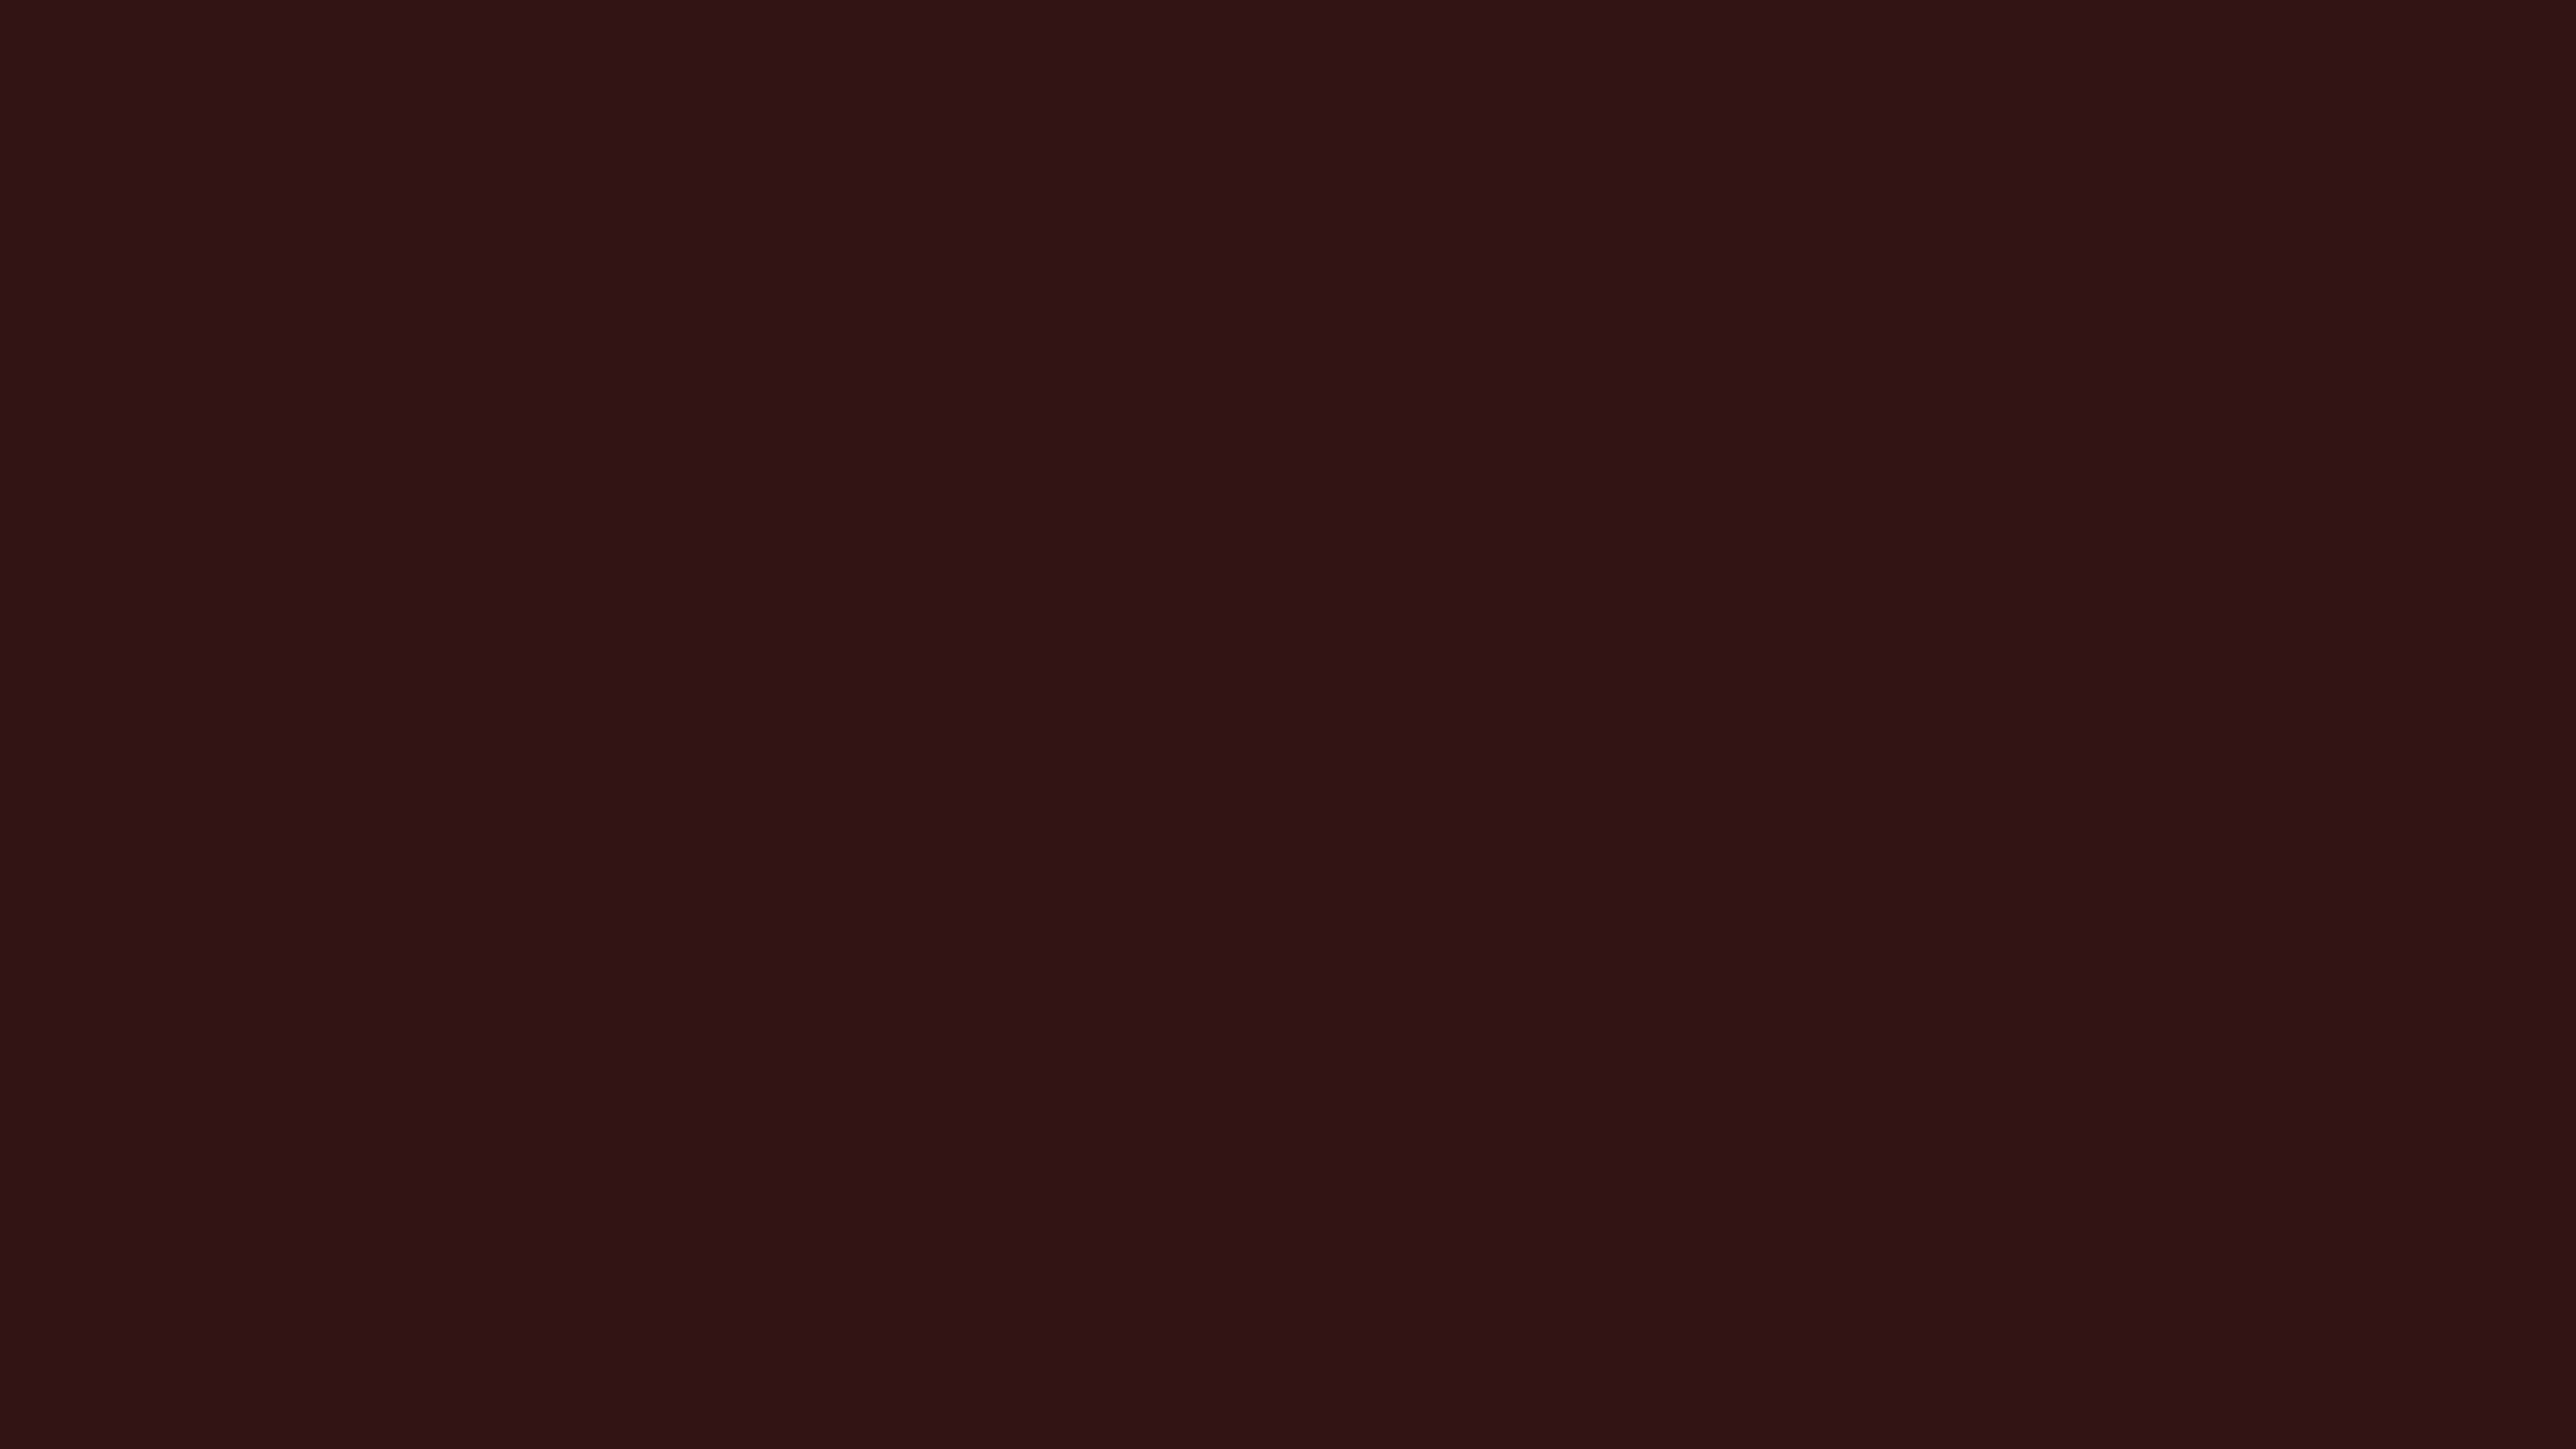 5120x2880 Seal Brown Solid Color Background